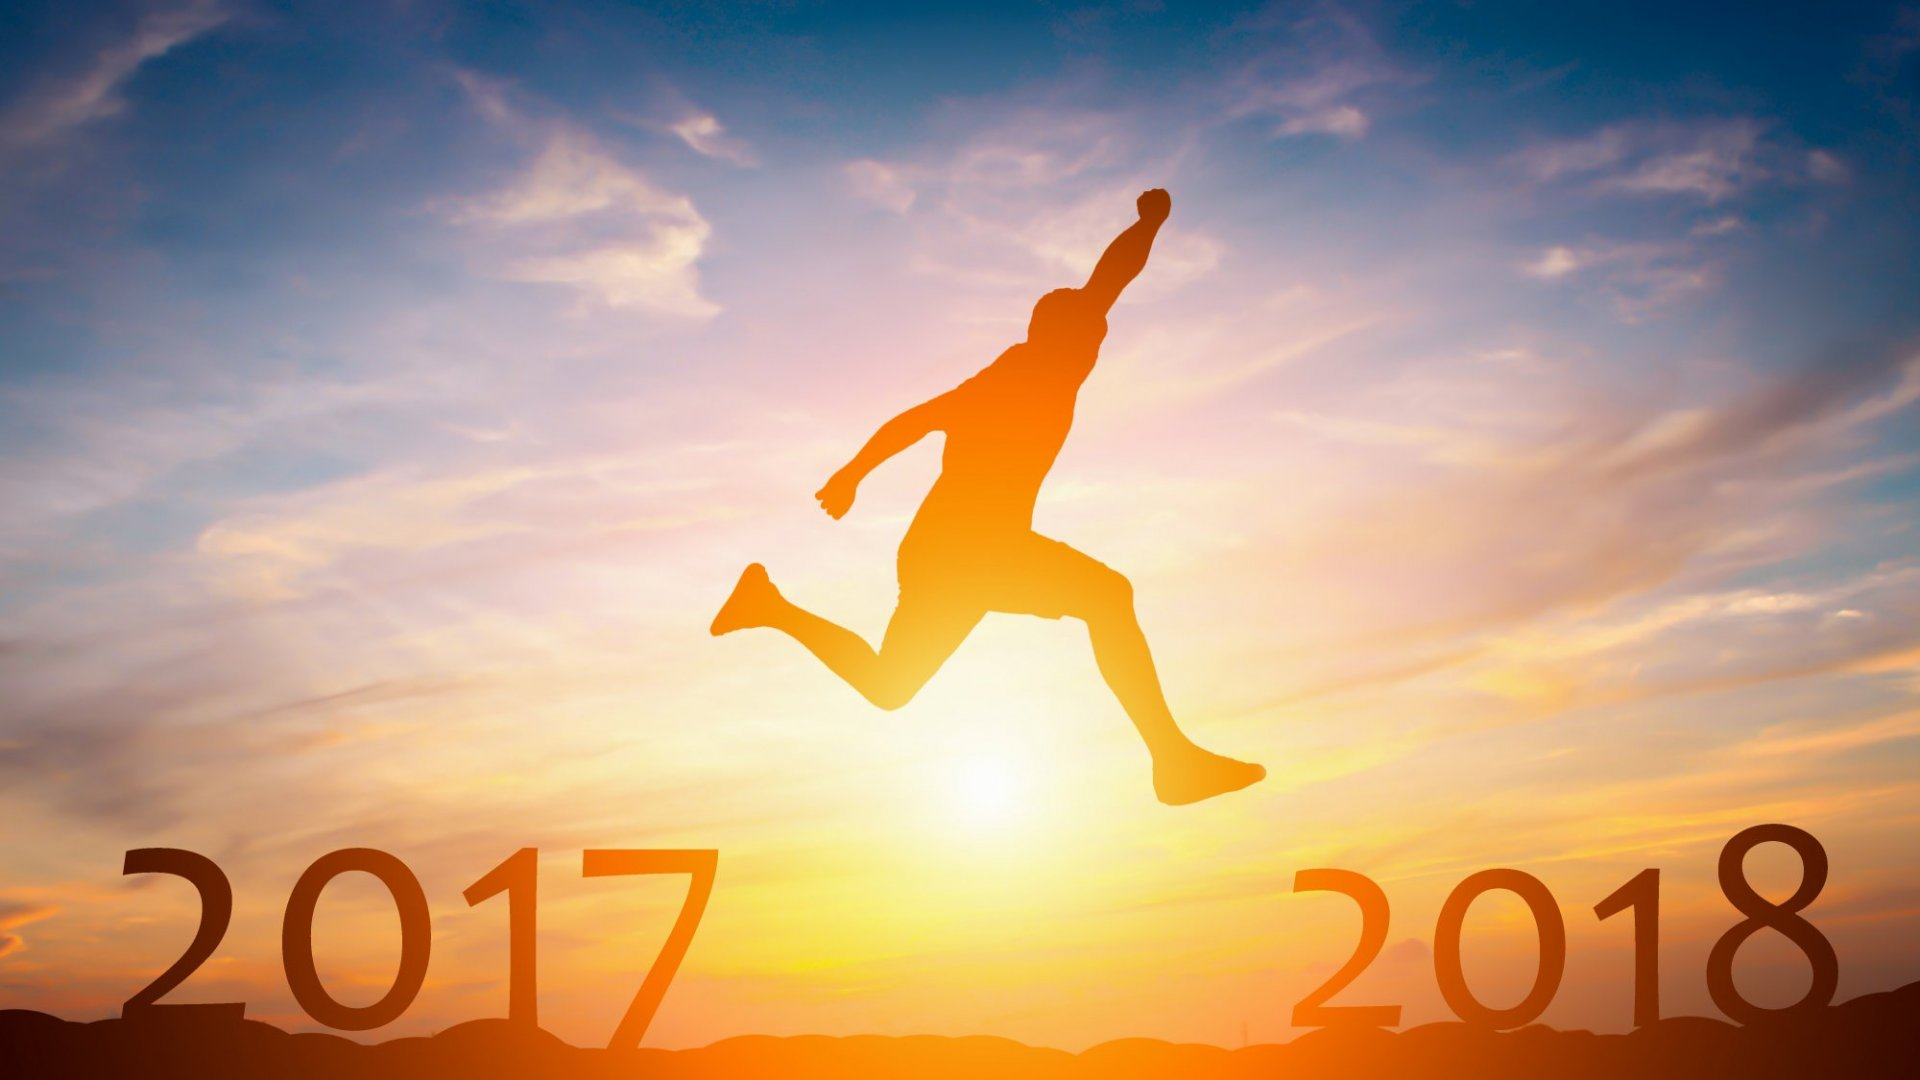 How to Make Those New Year's Resolutions a Reality